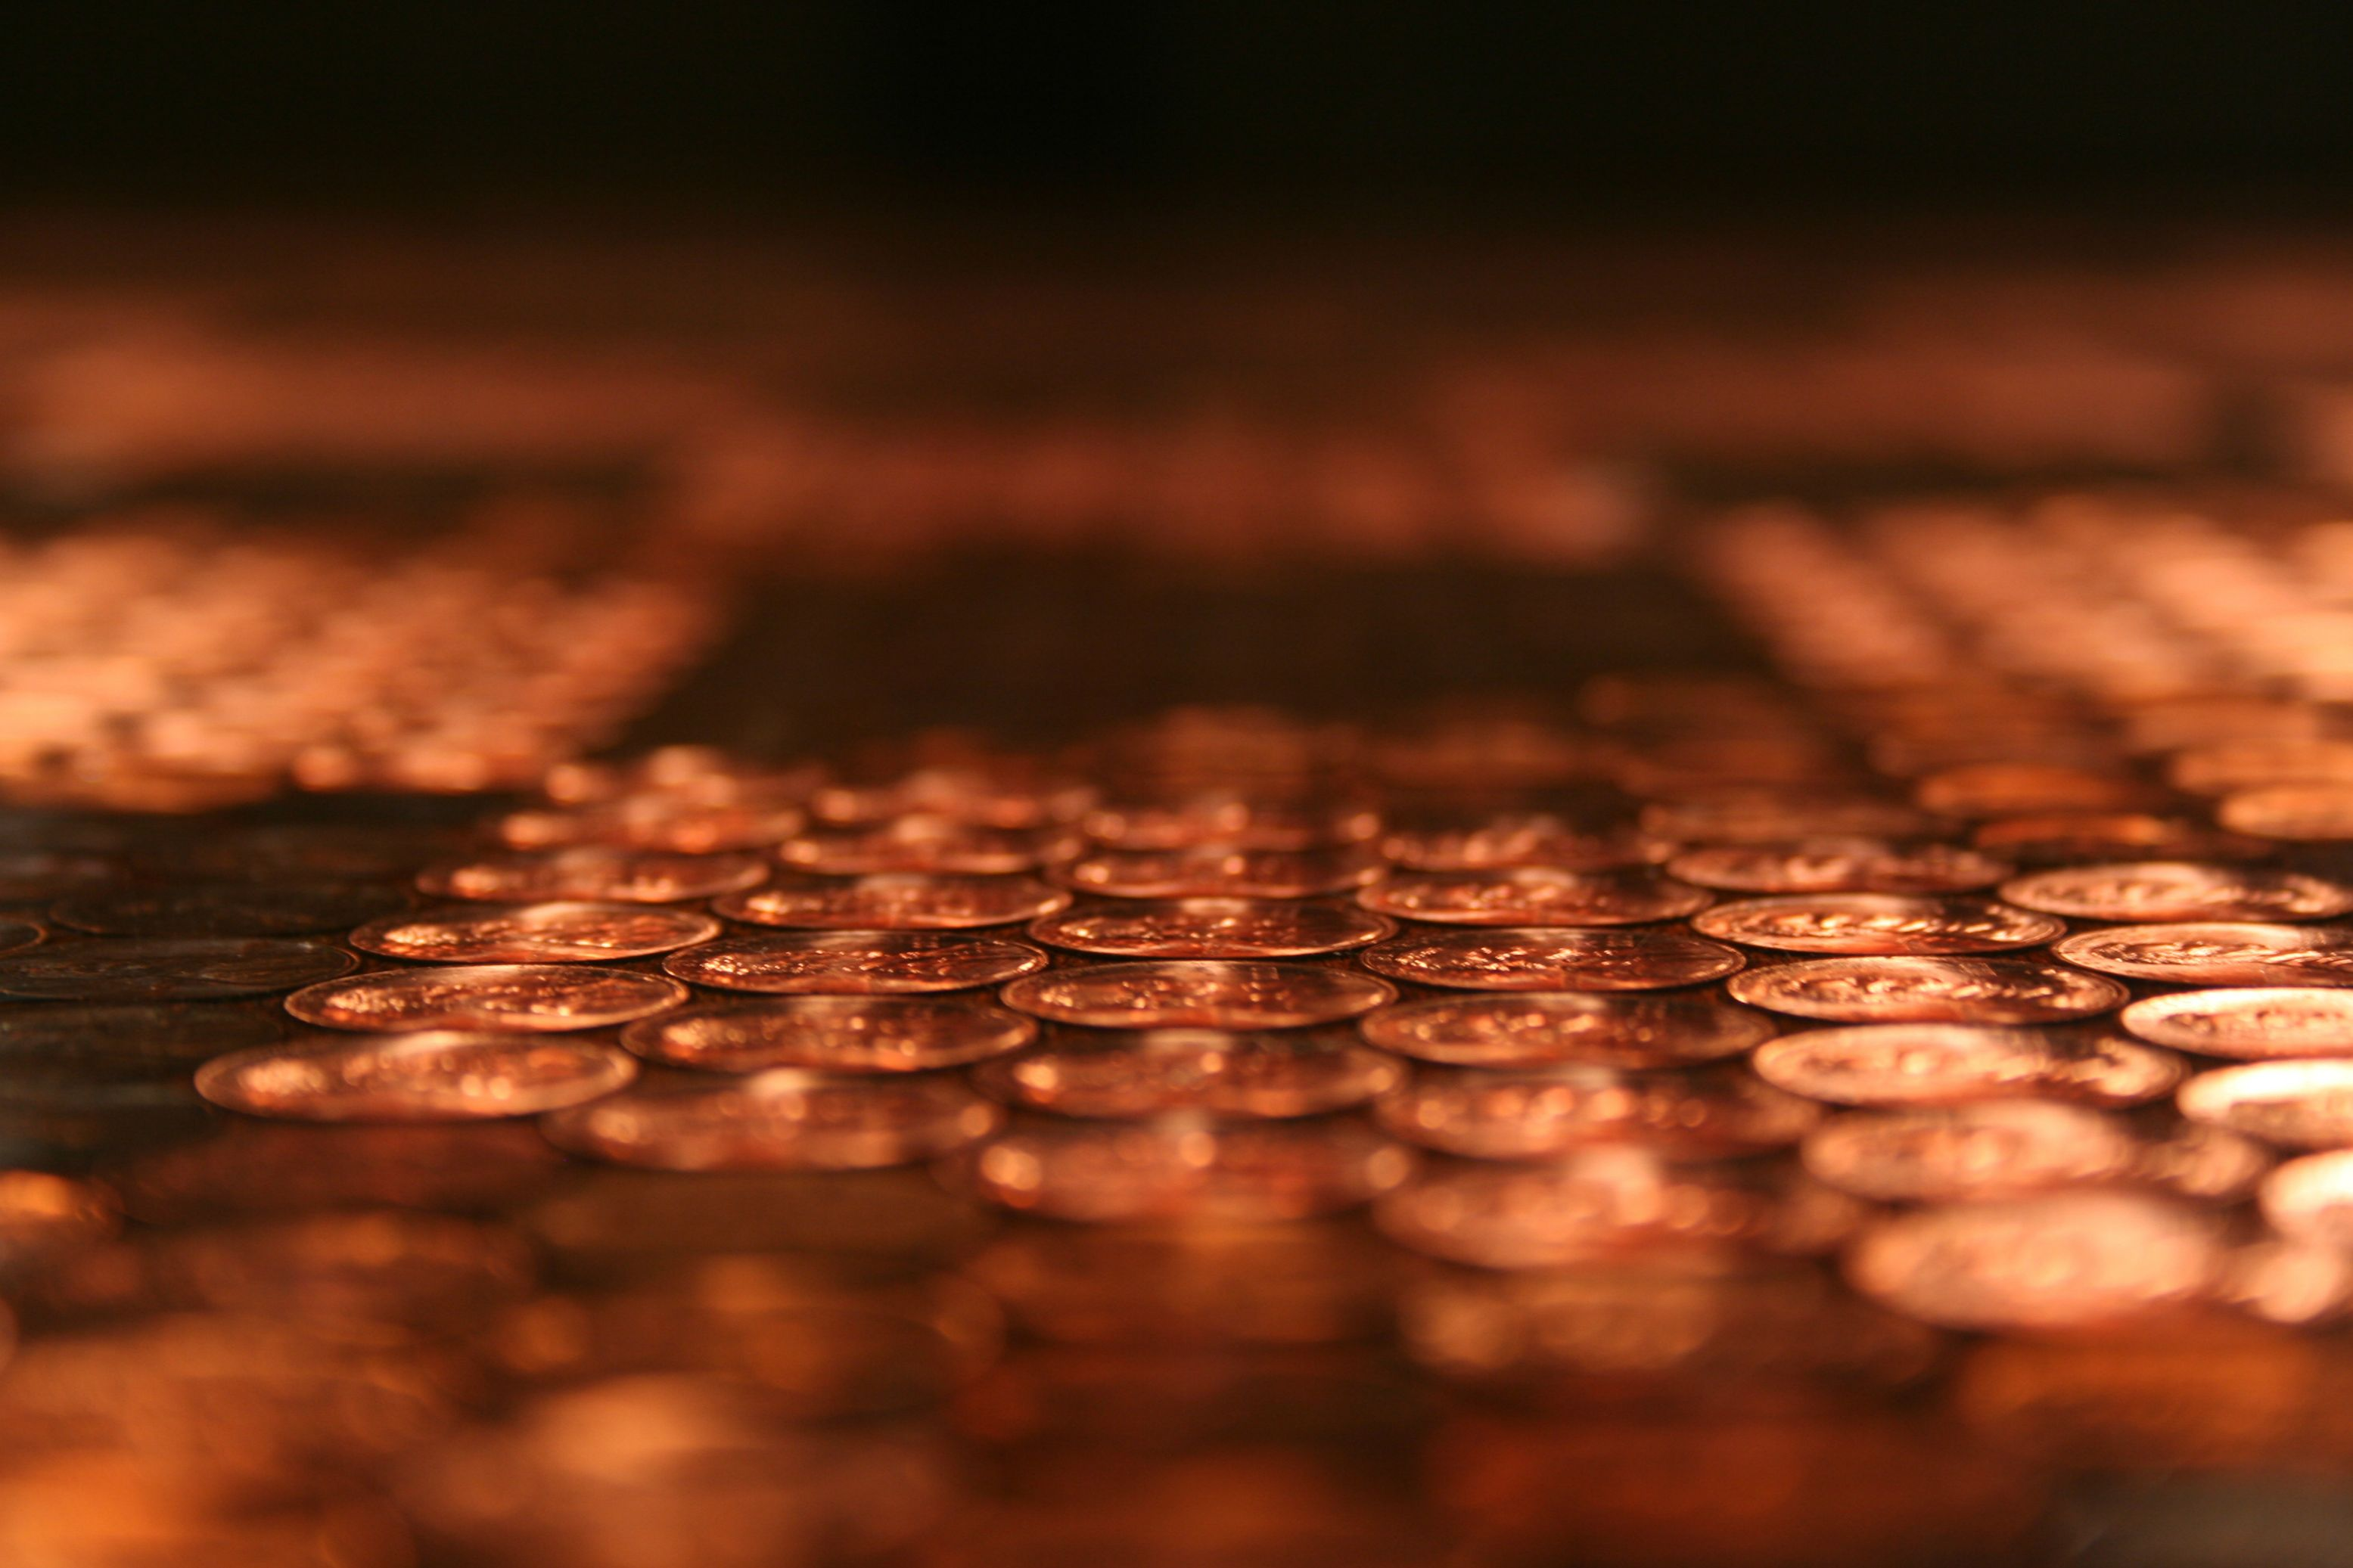 This Tabletop Has Over 5000 Pennies Embedded In It